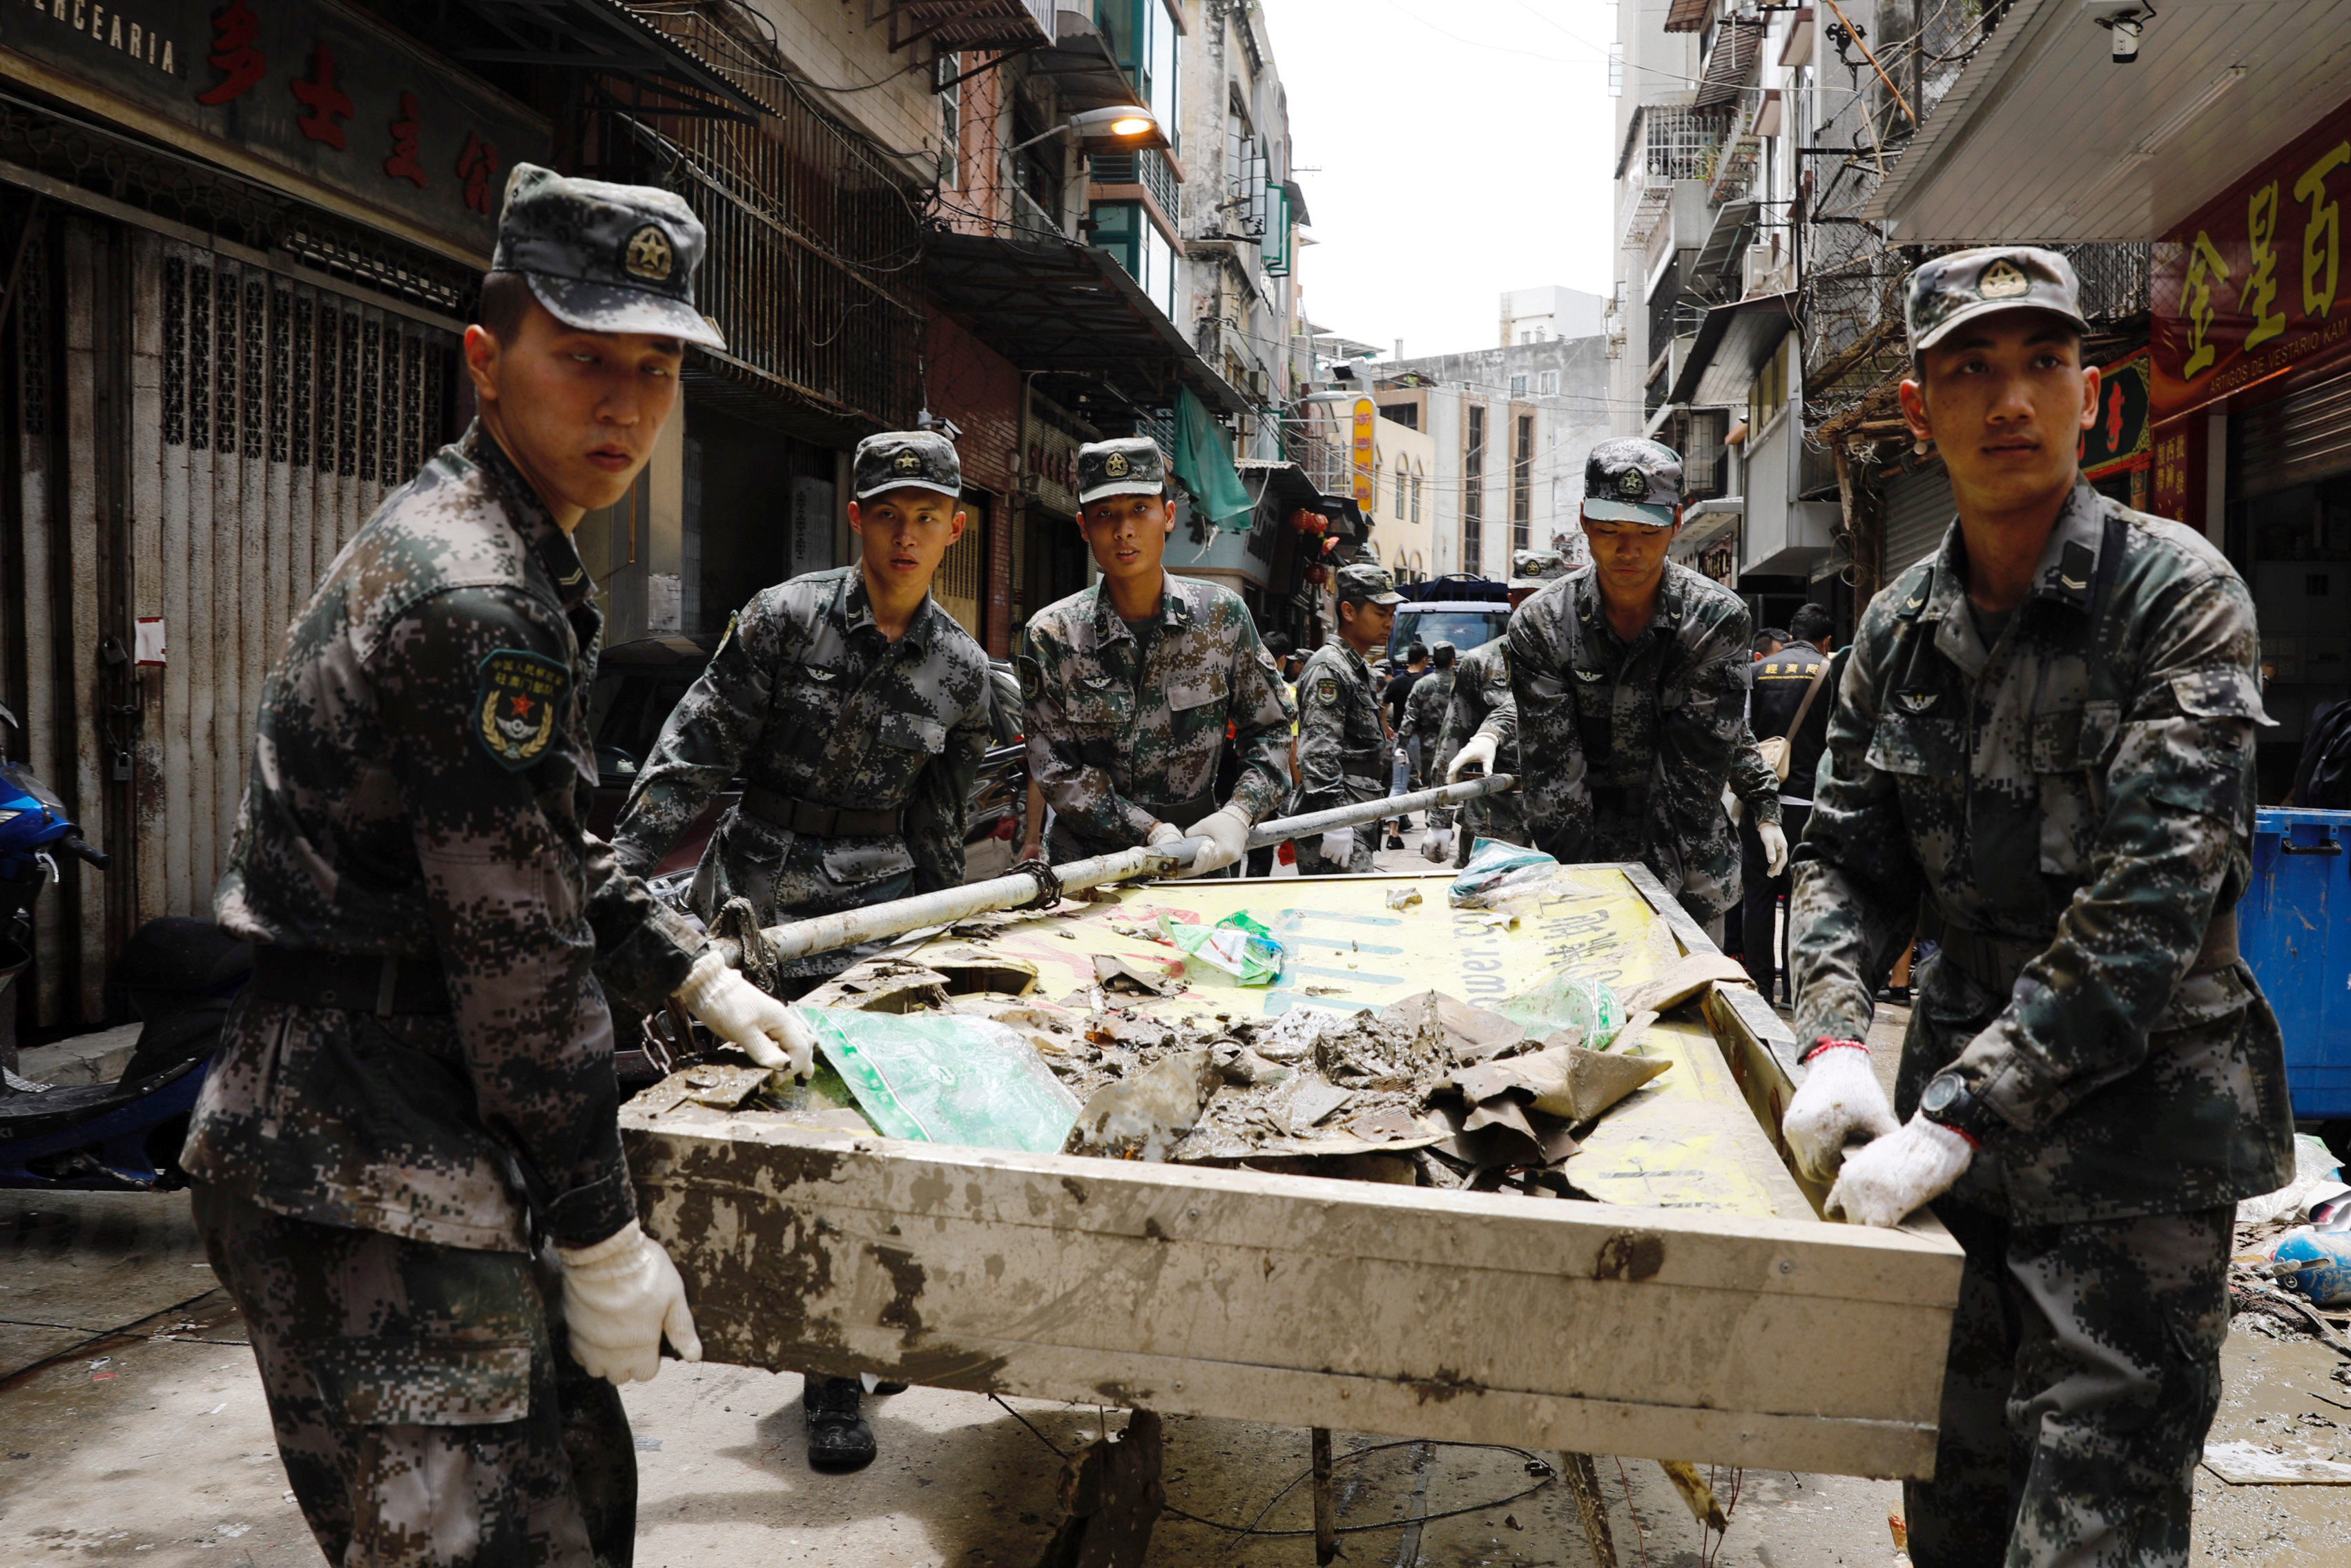 People's Liberation Army (PLA) soldiers clean debris after Typhoon Hato hits in Macau, China August 25, 2017. REUTERS/Tyrone Siu